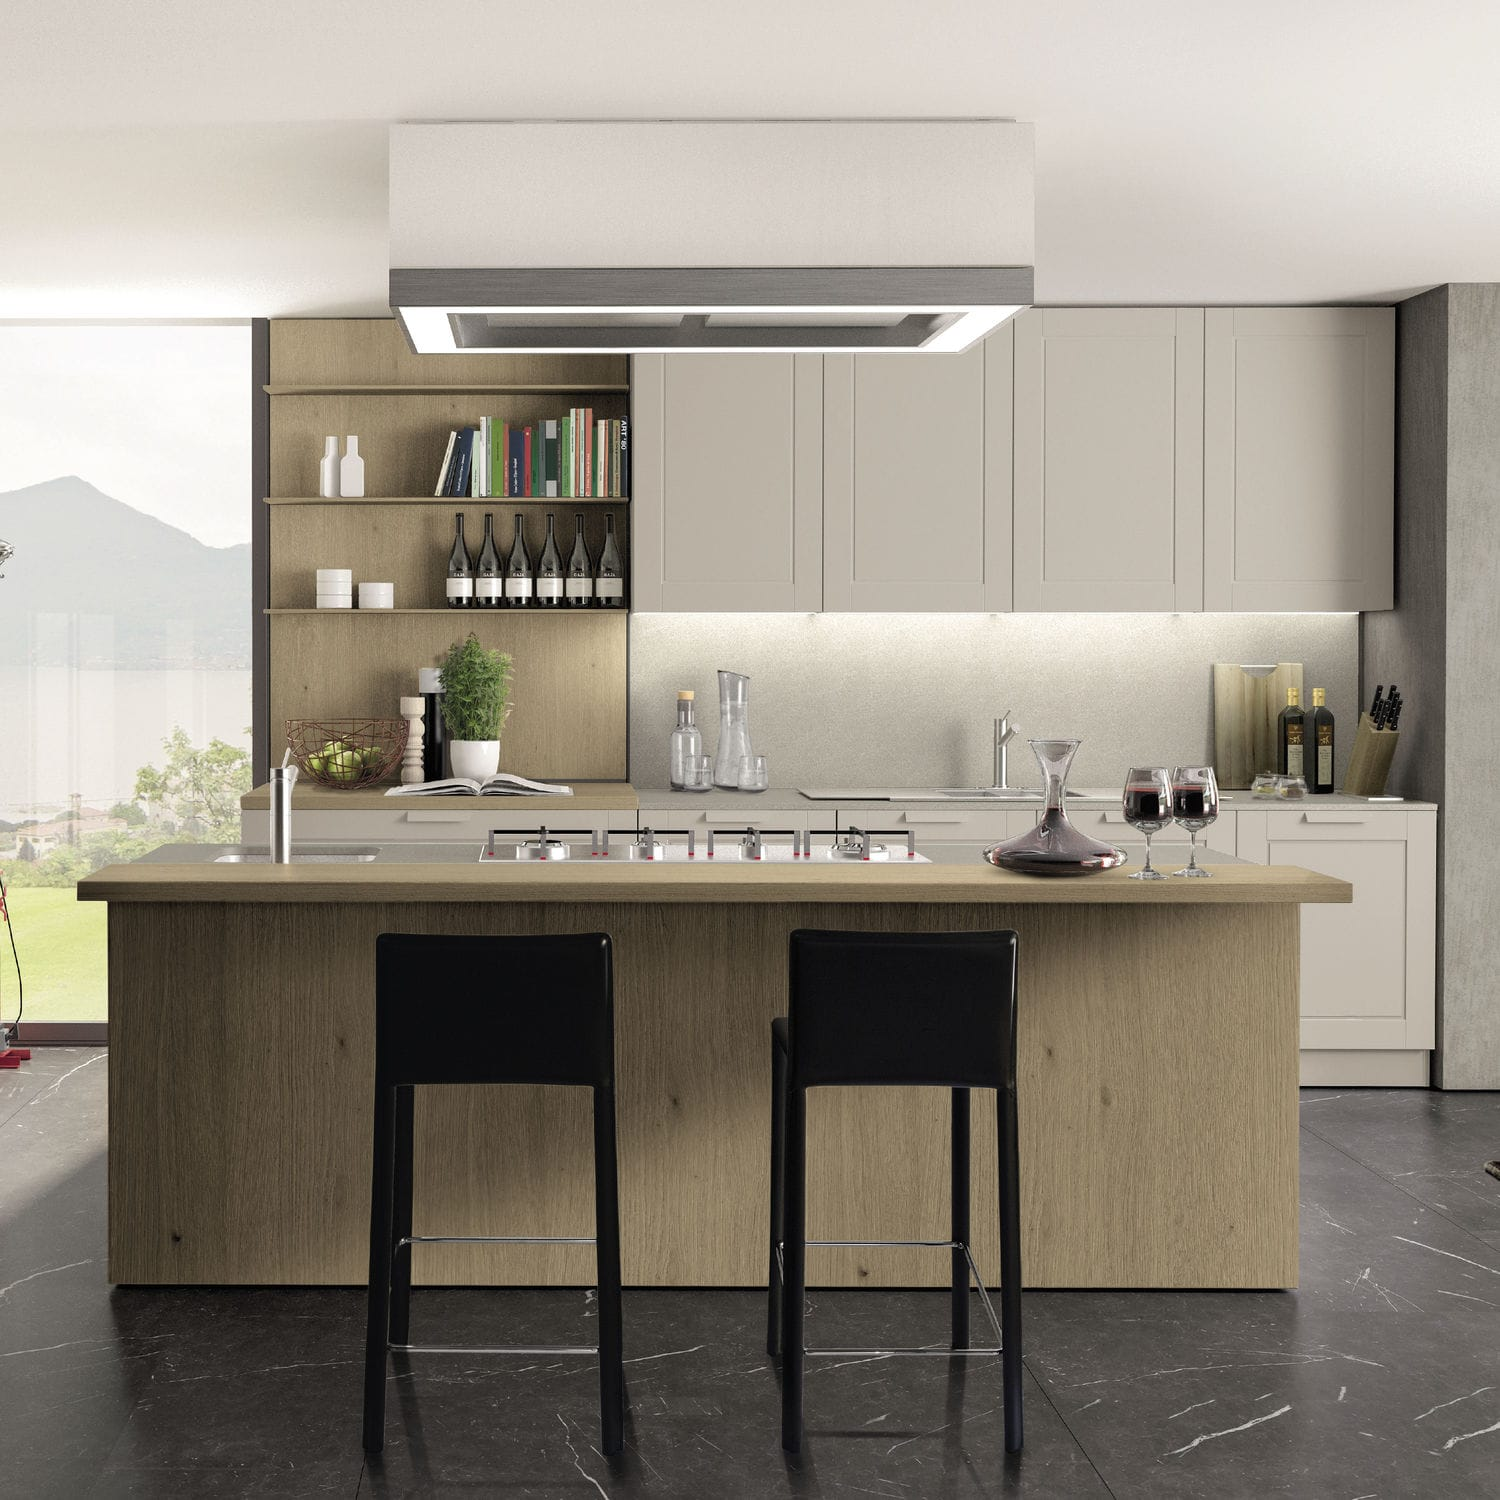 contemporary-kitchen-wooden-island-lacquered-quadrica-throughout-contemporary-kitchen-design-for-euromobil-contemporary-kitchen-design-for-euromobil.jpg